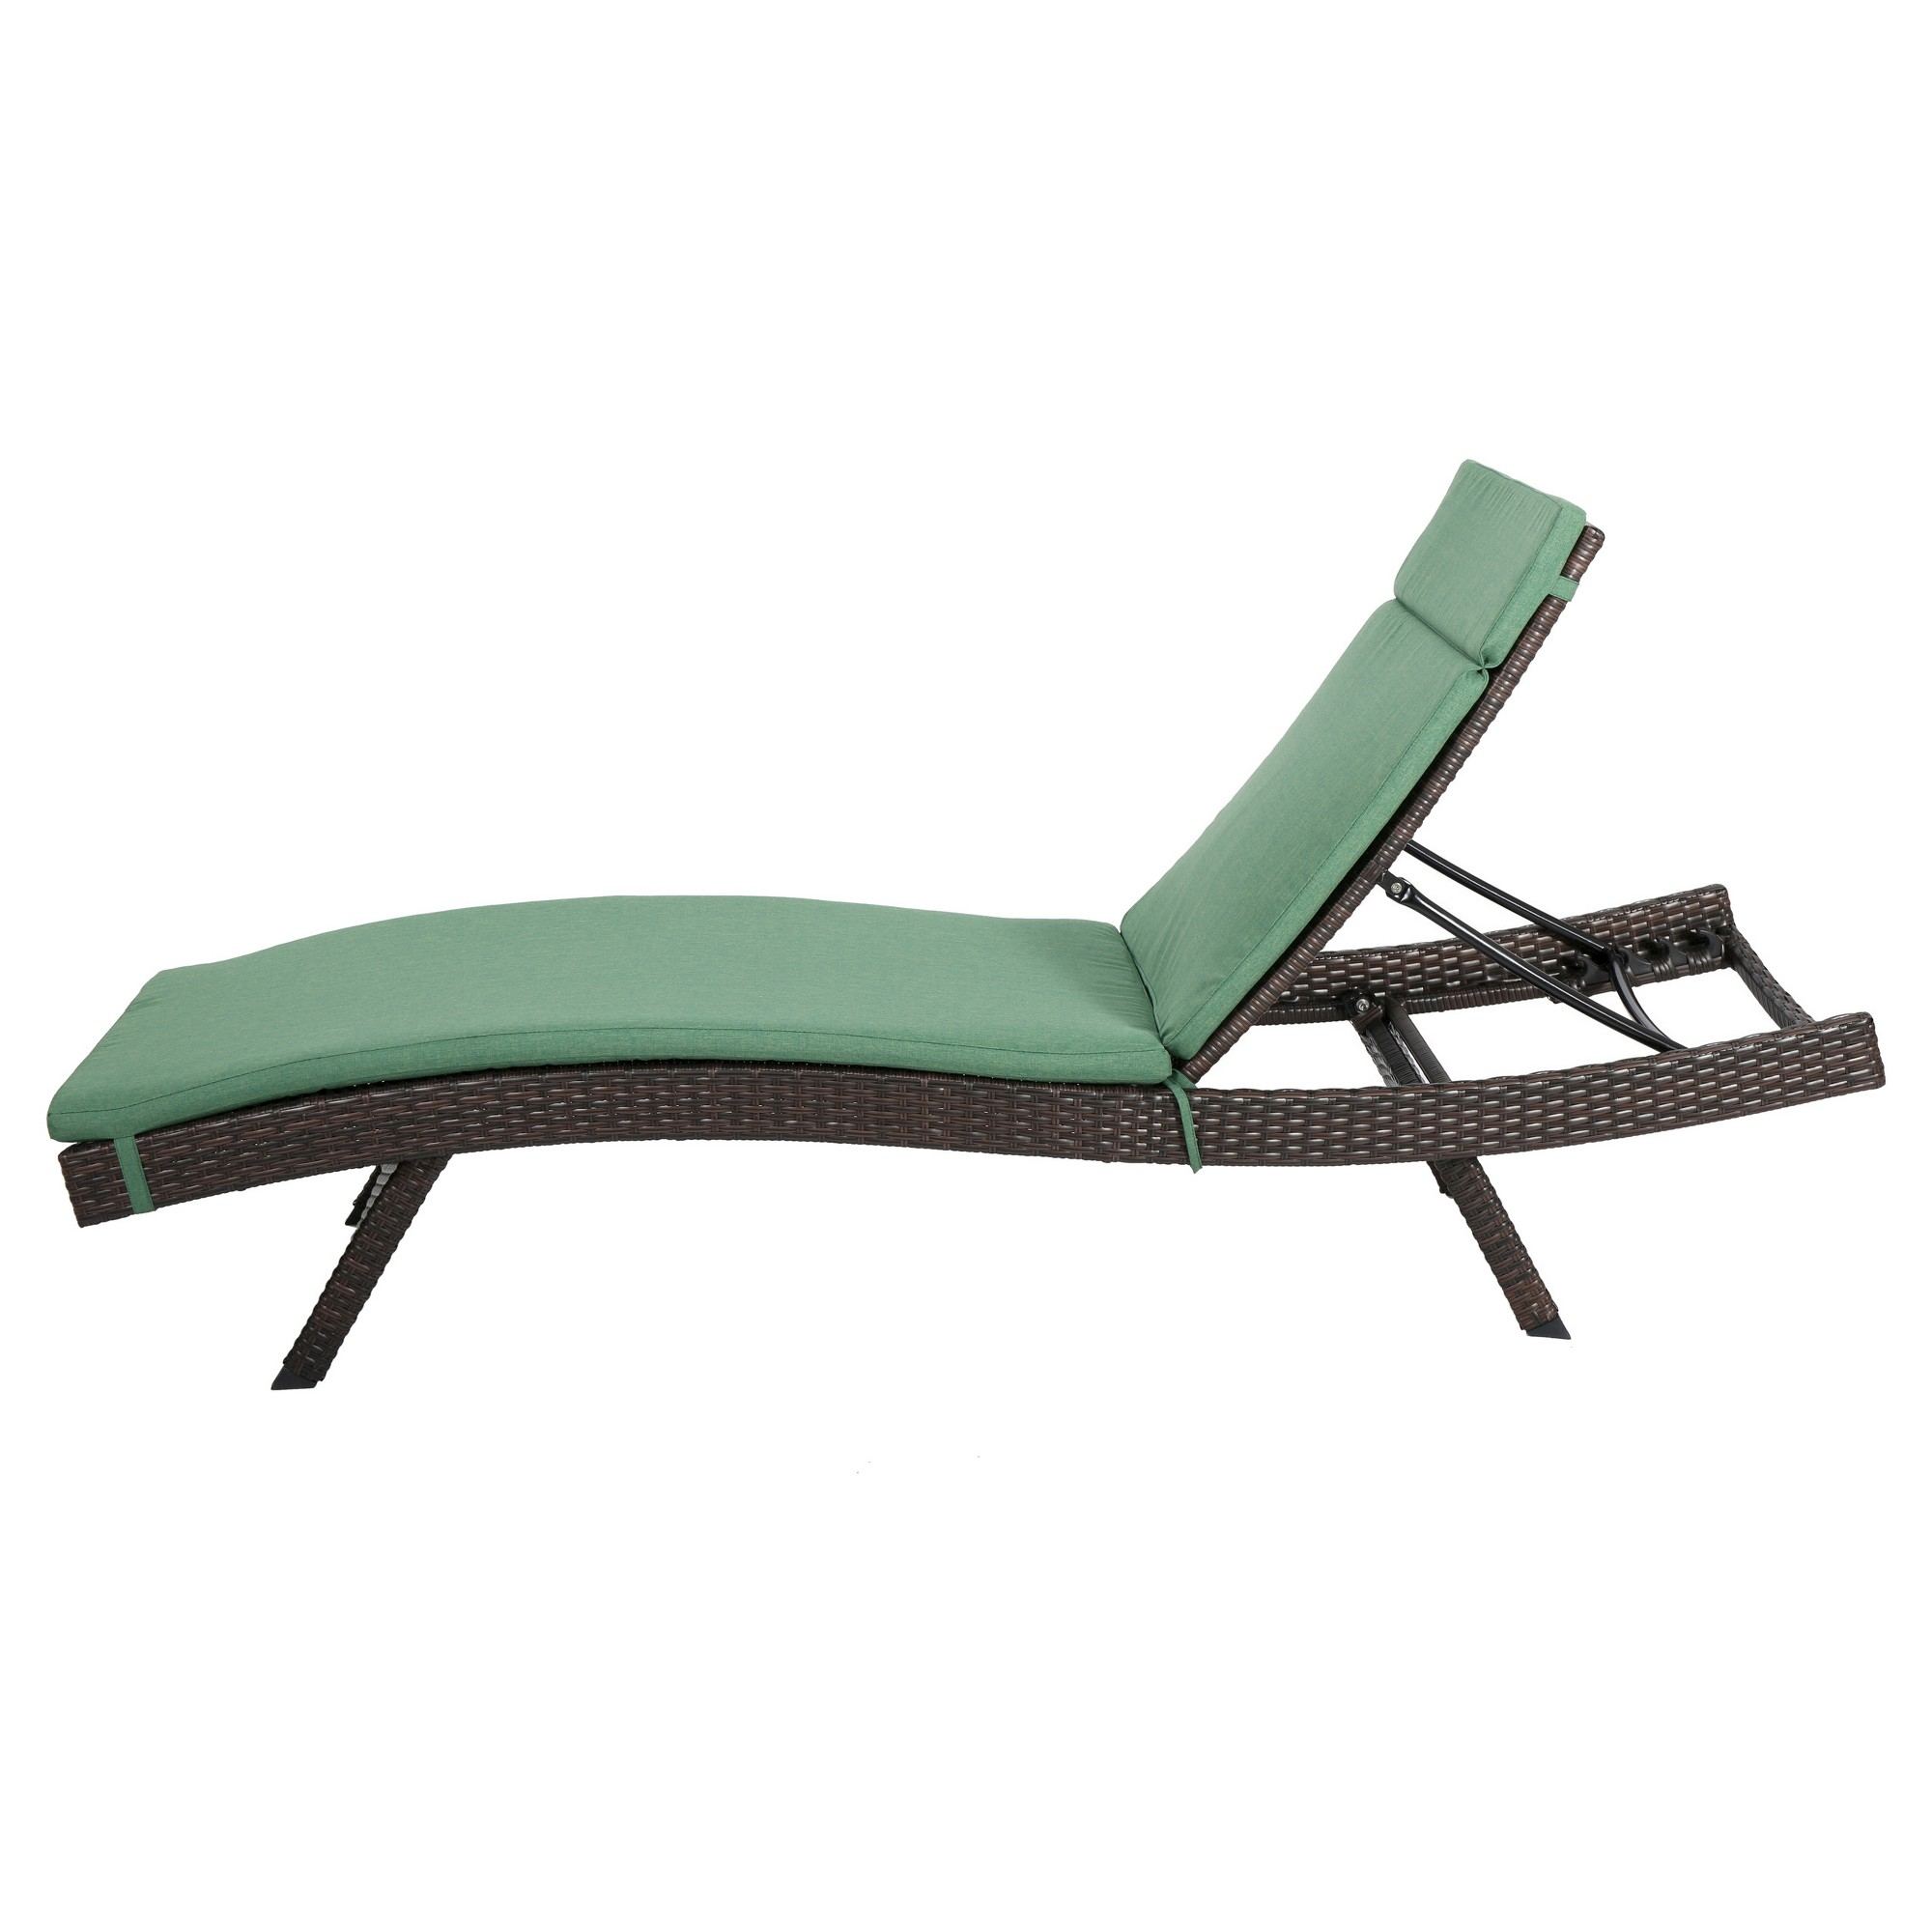 Outdoor Wicker Adjustable Chaise Lounge Brown With Green Cushion